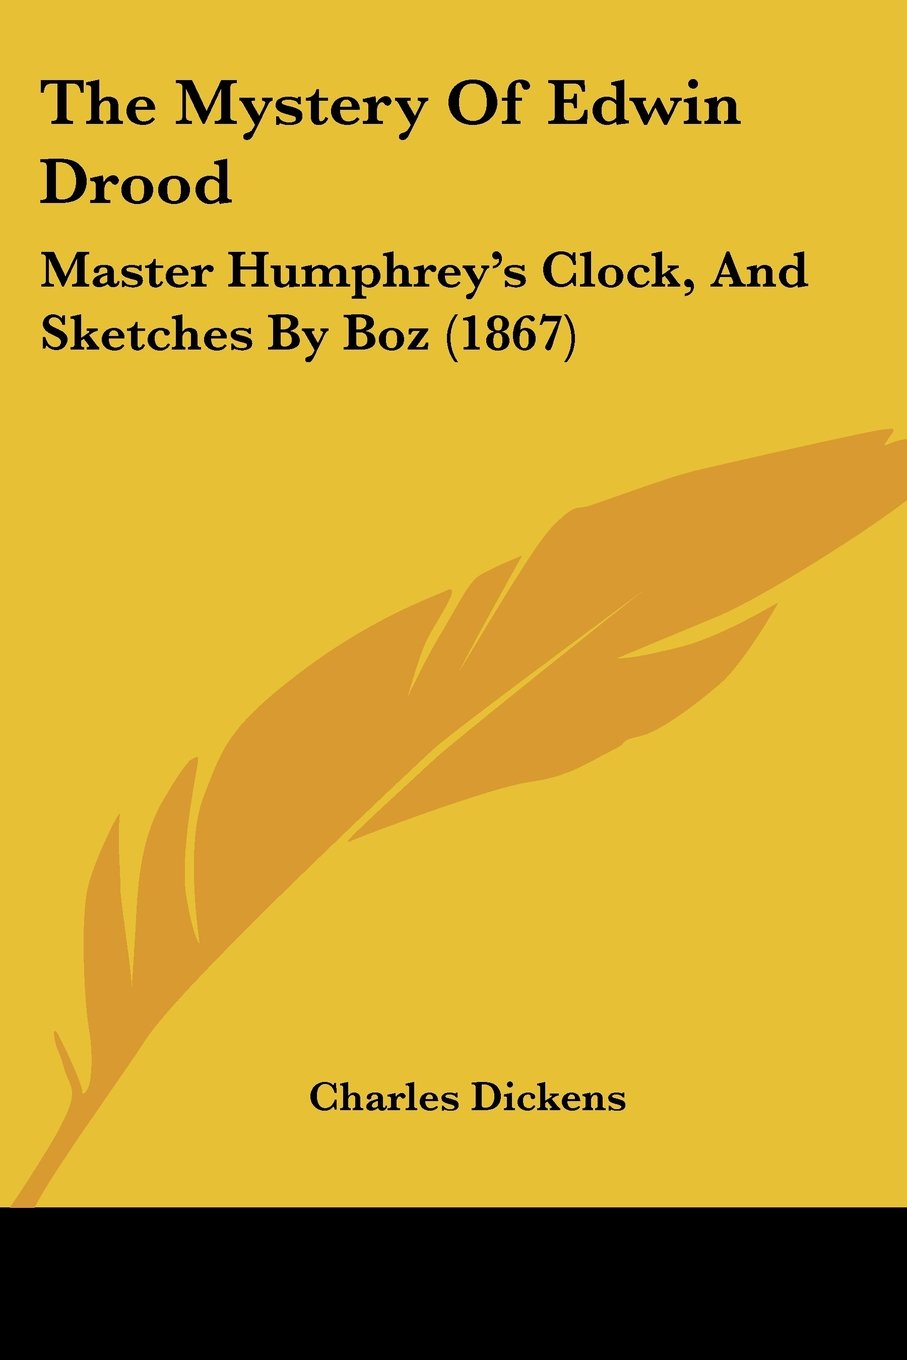 Download The Mystery Of Edwin Drood: Master Humphrey's Clock, And Sketches By Boz (1867) pdf